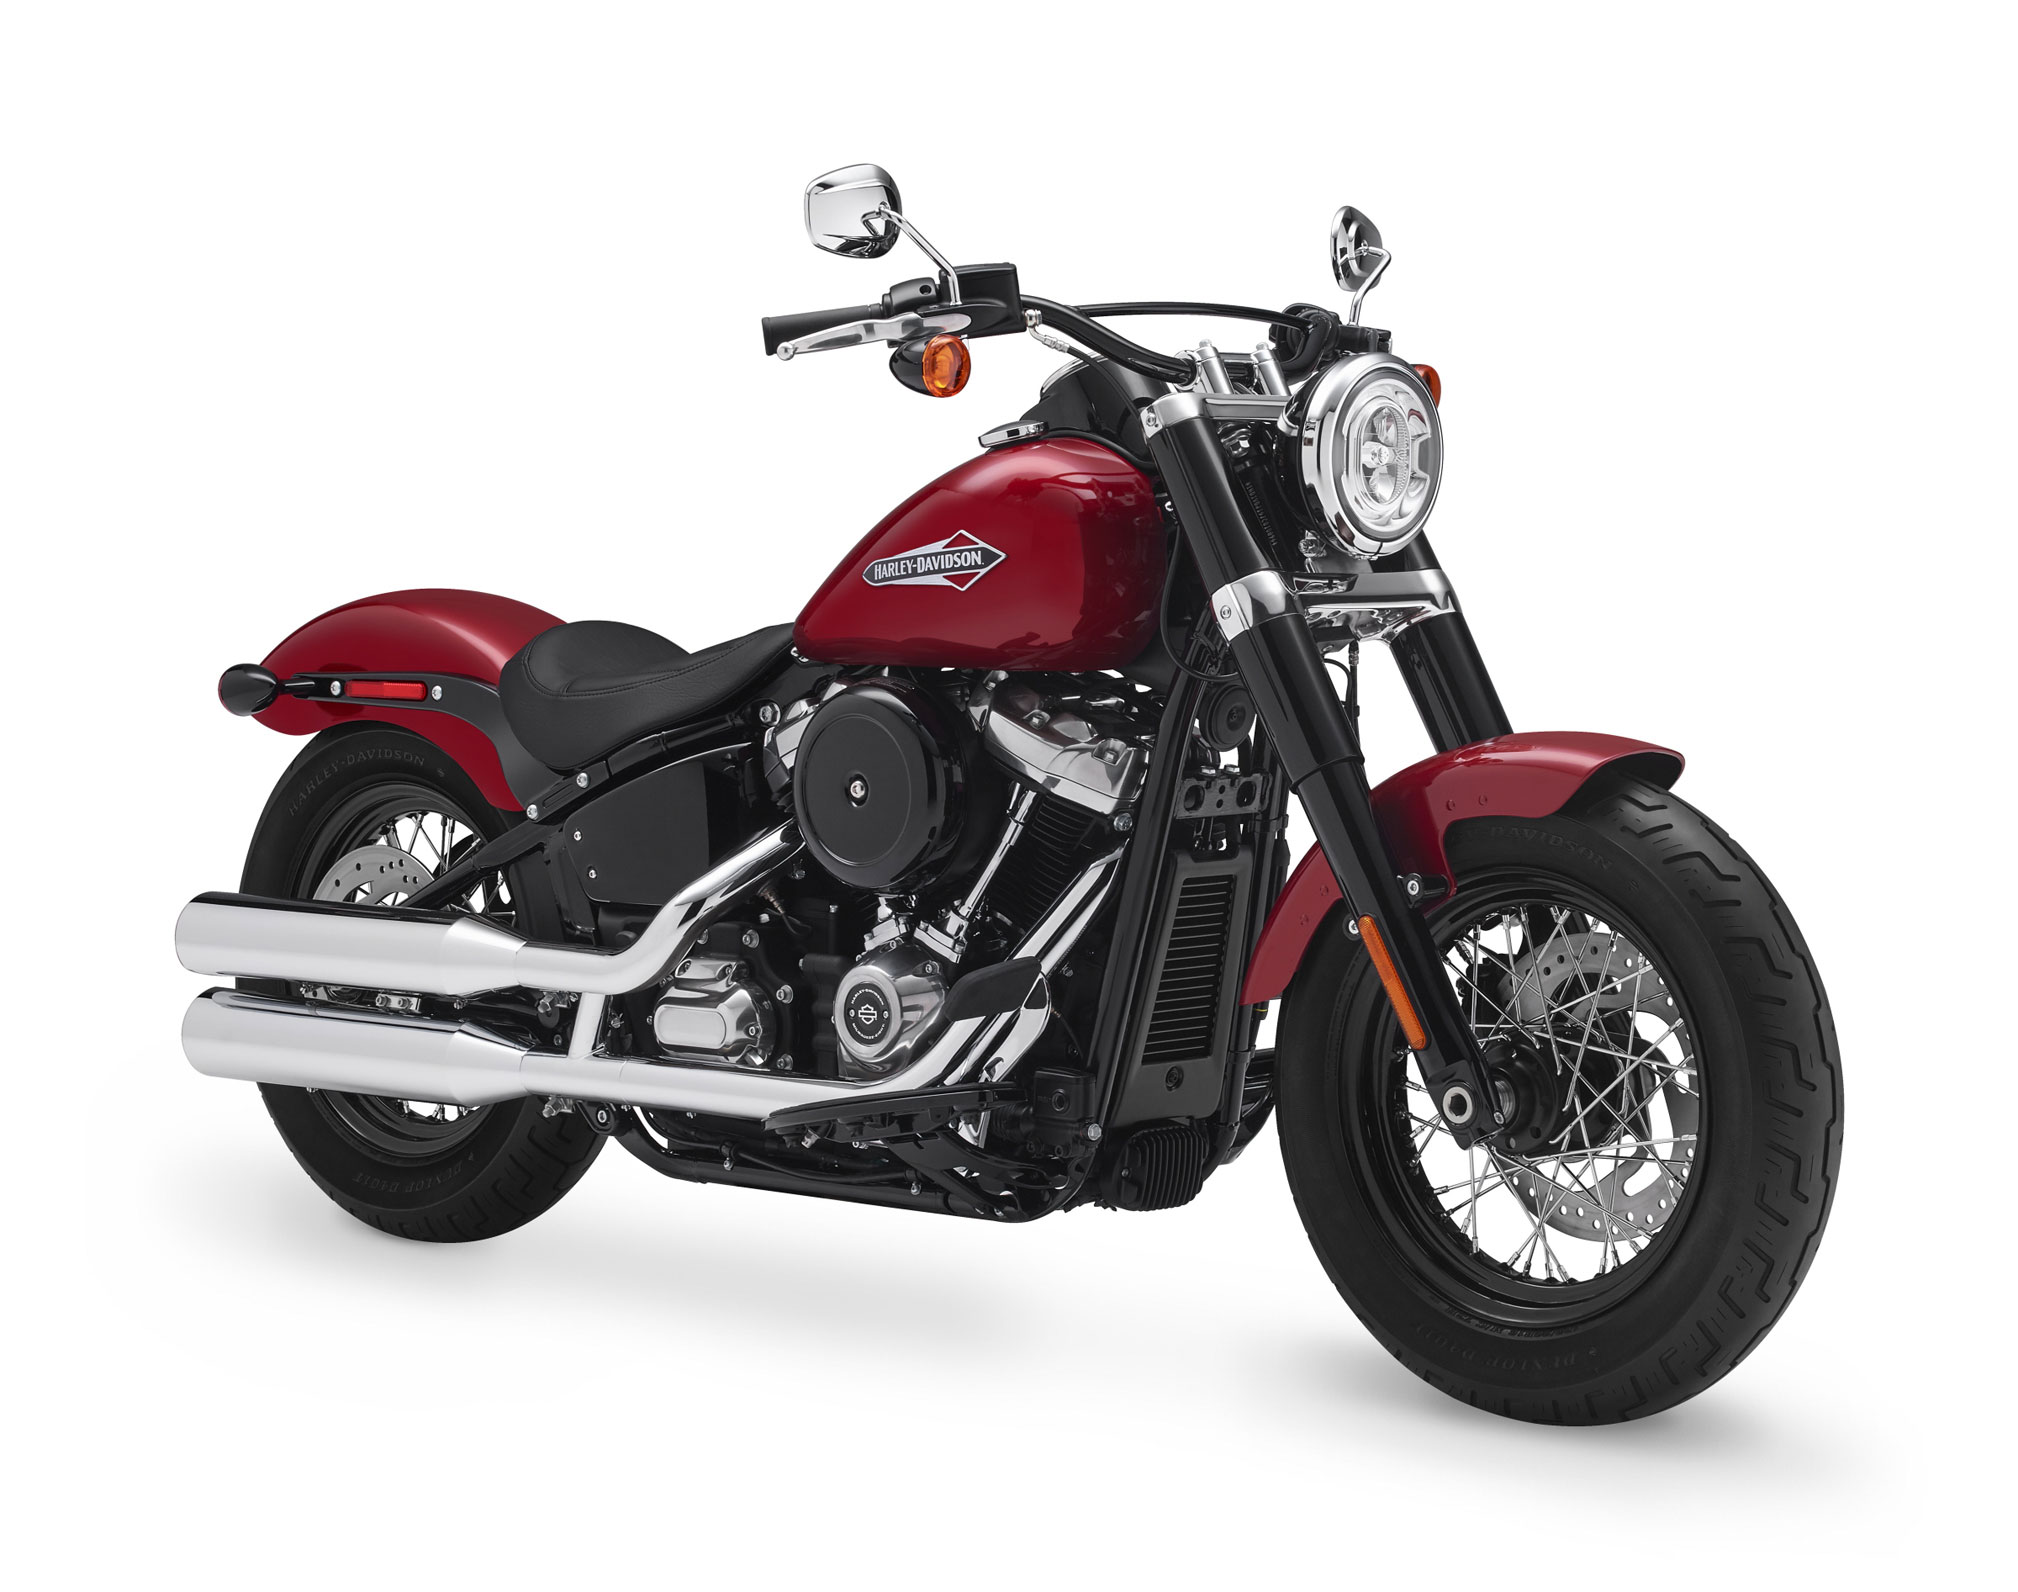 2018 harley davidson softail slim review totalmotorcycle. Black Bedroom Furniture Sets. Home Design Ideas